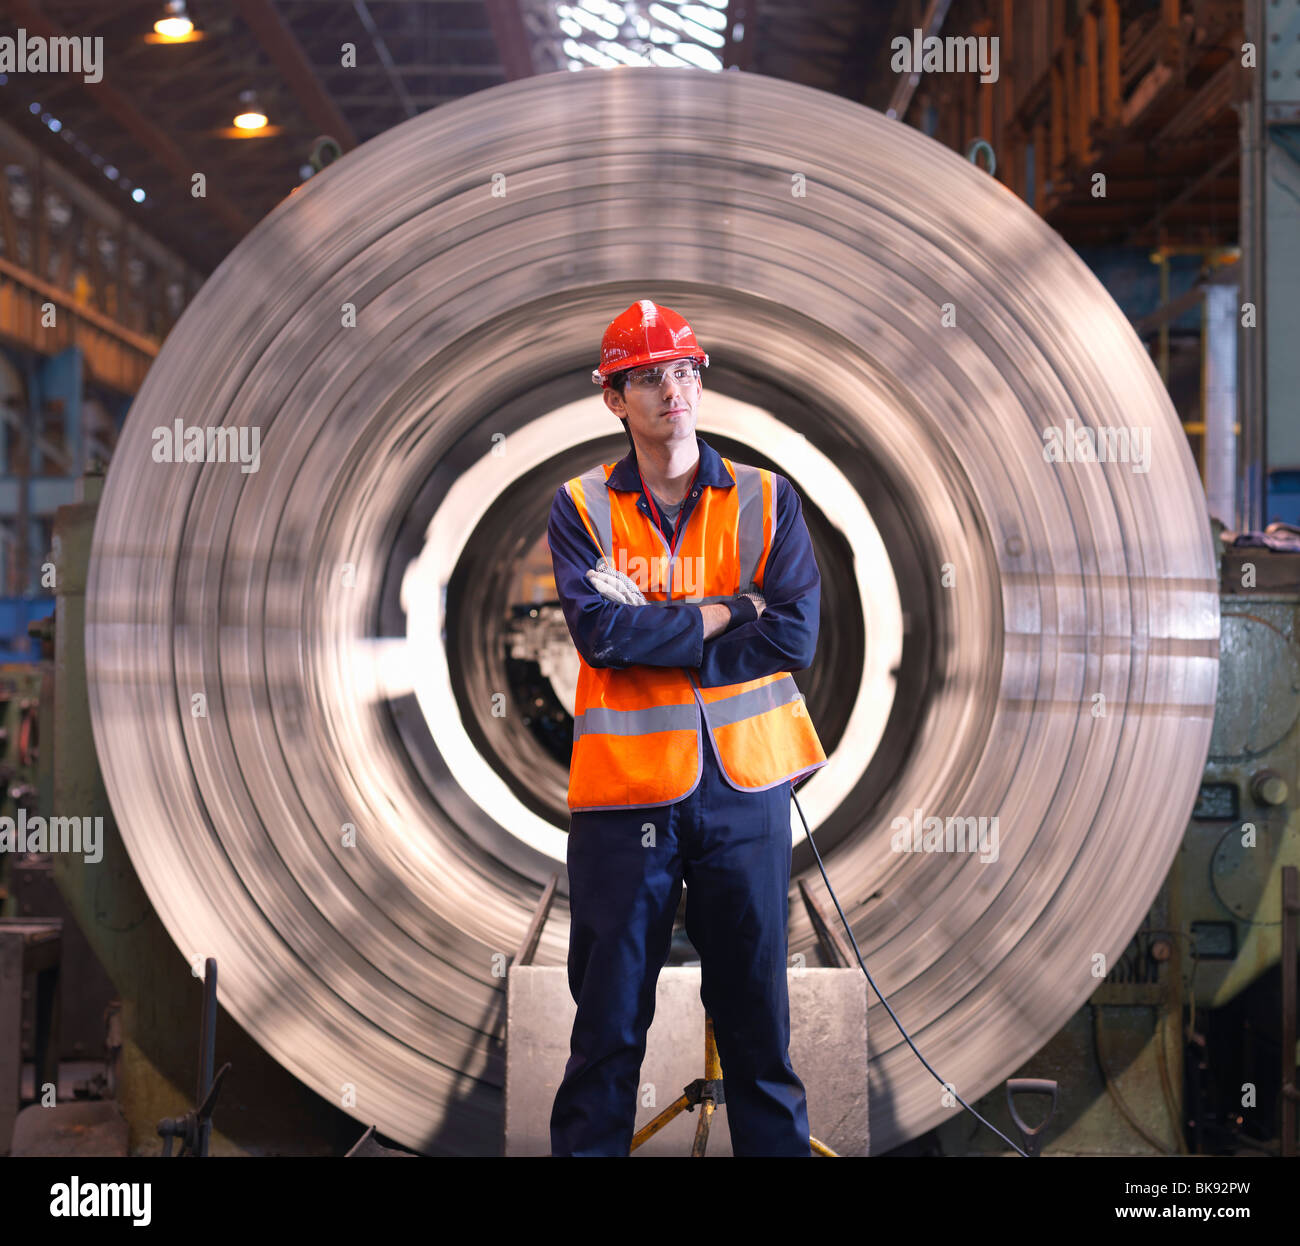 Engineer In Front Of Steel Lathe - Stock Image